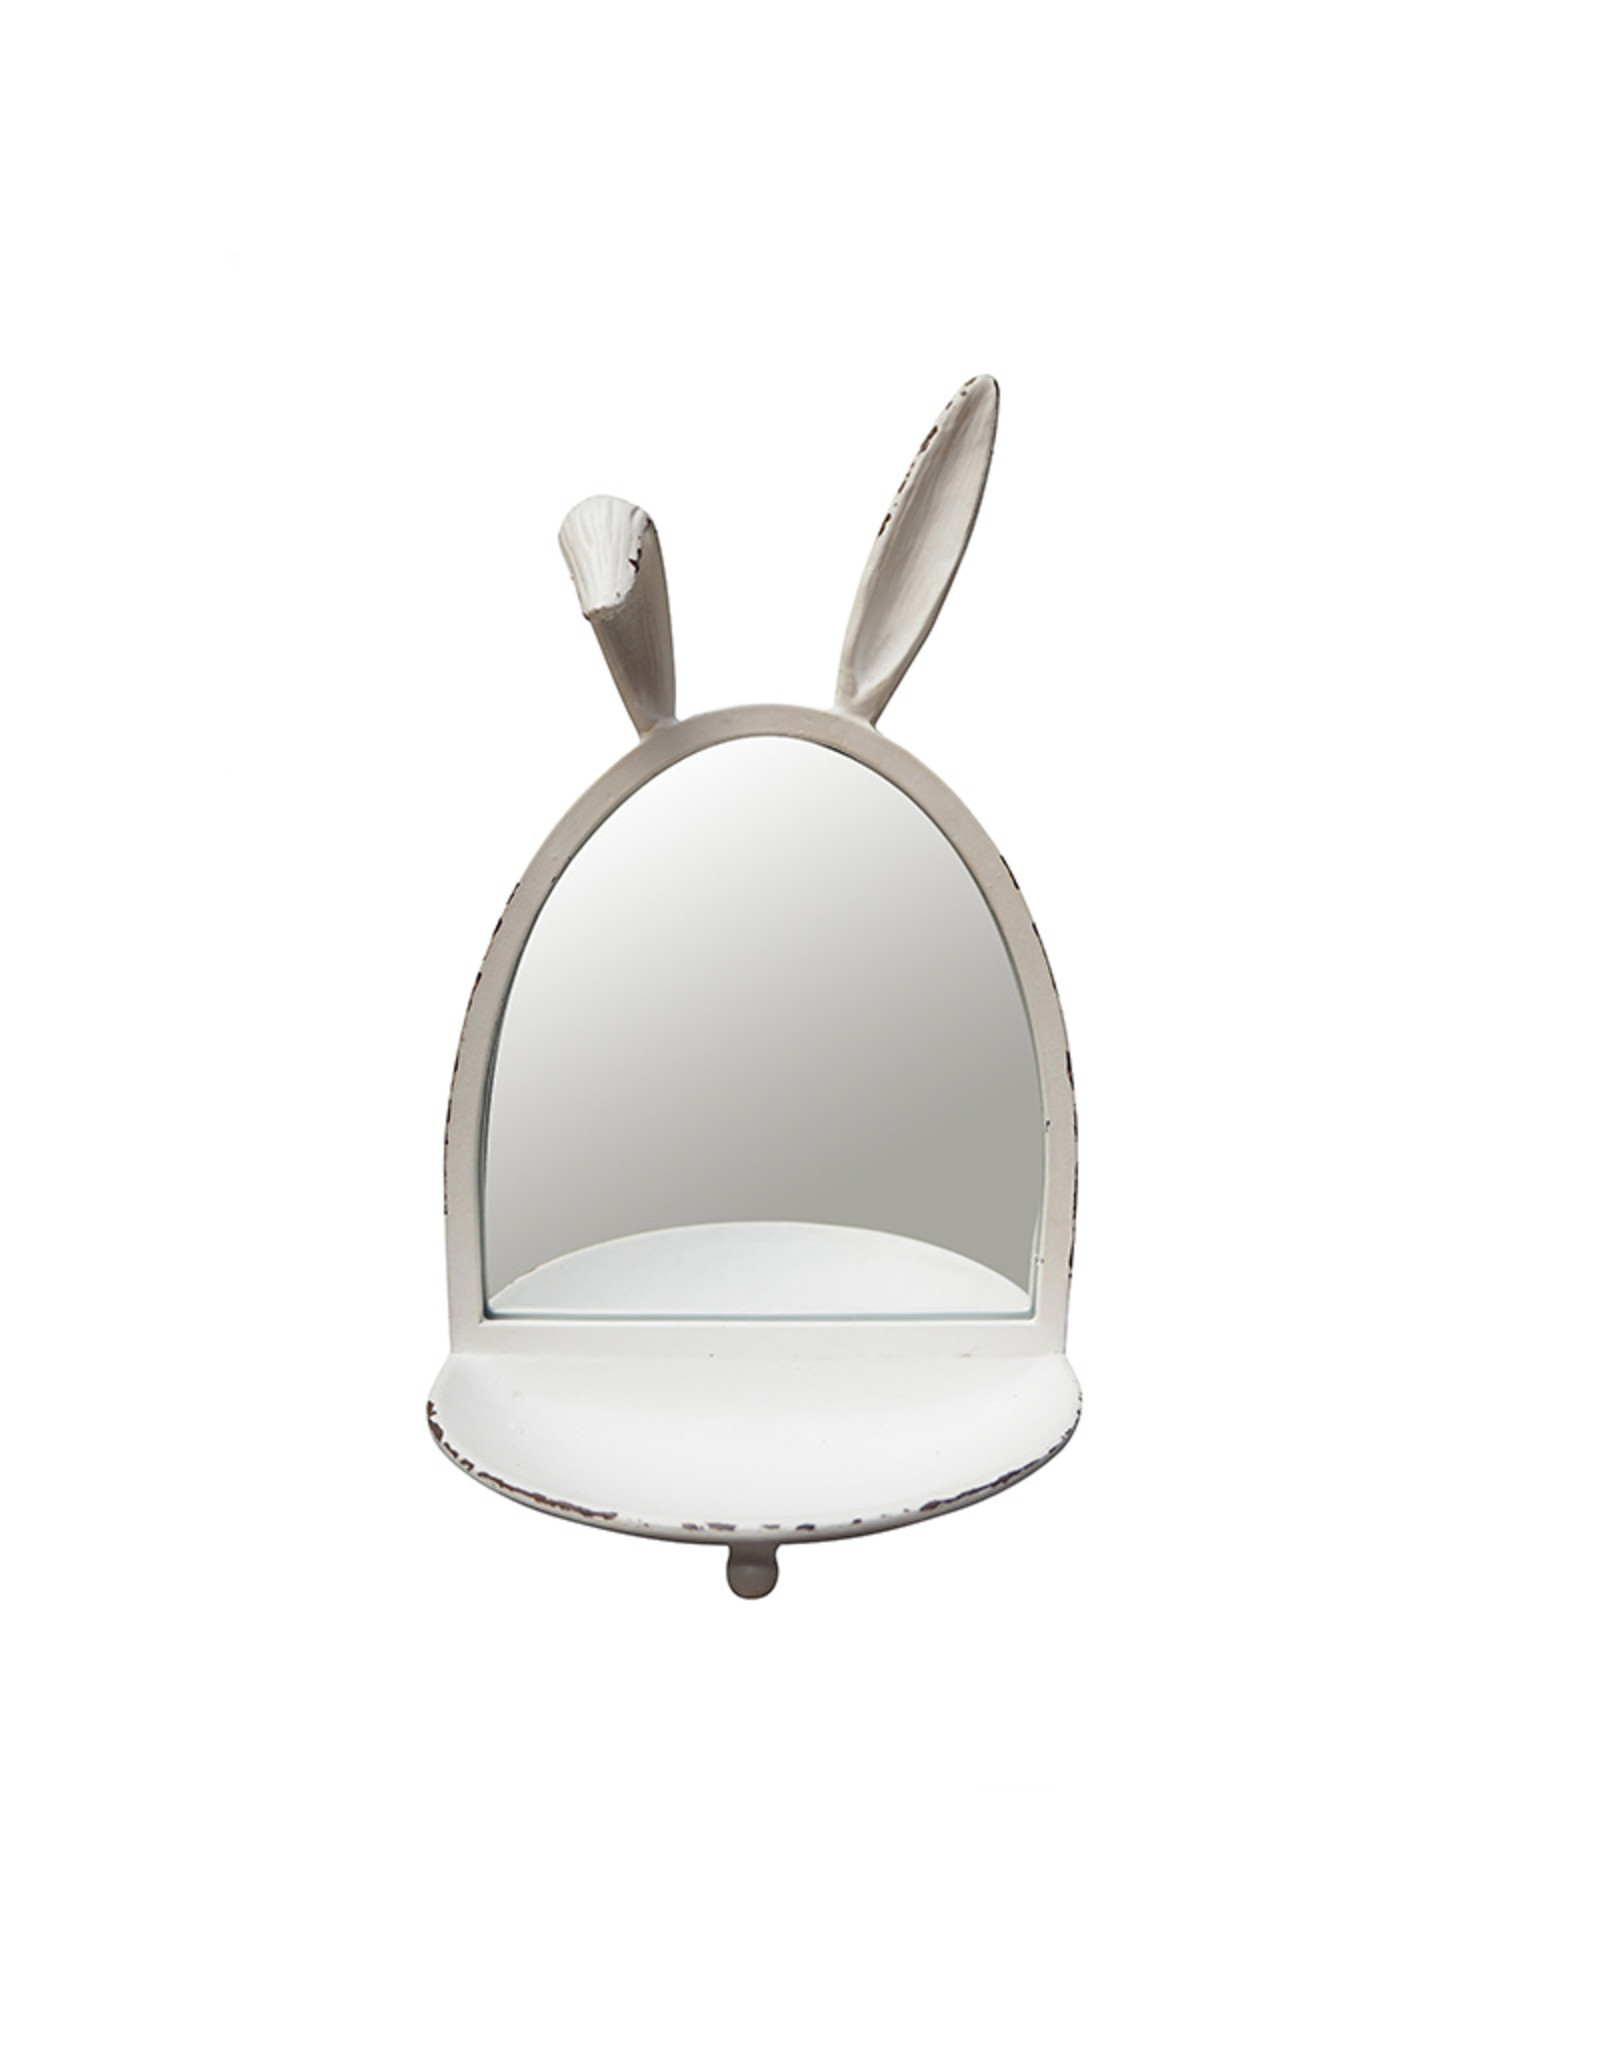 Hanging bunny mirror with tray